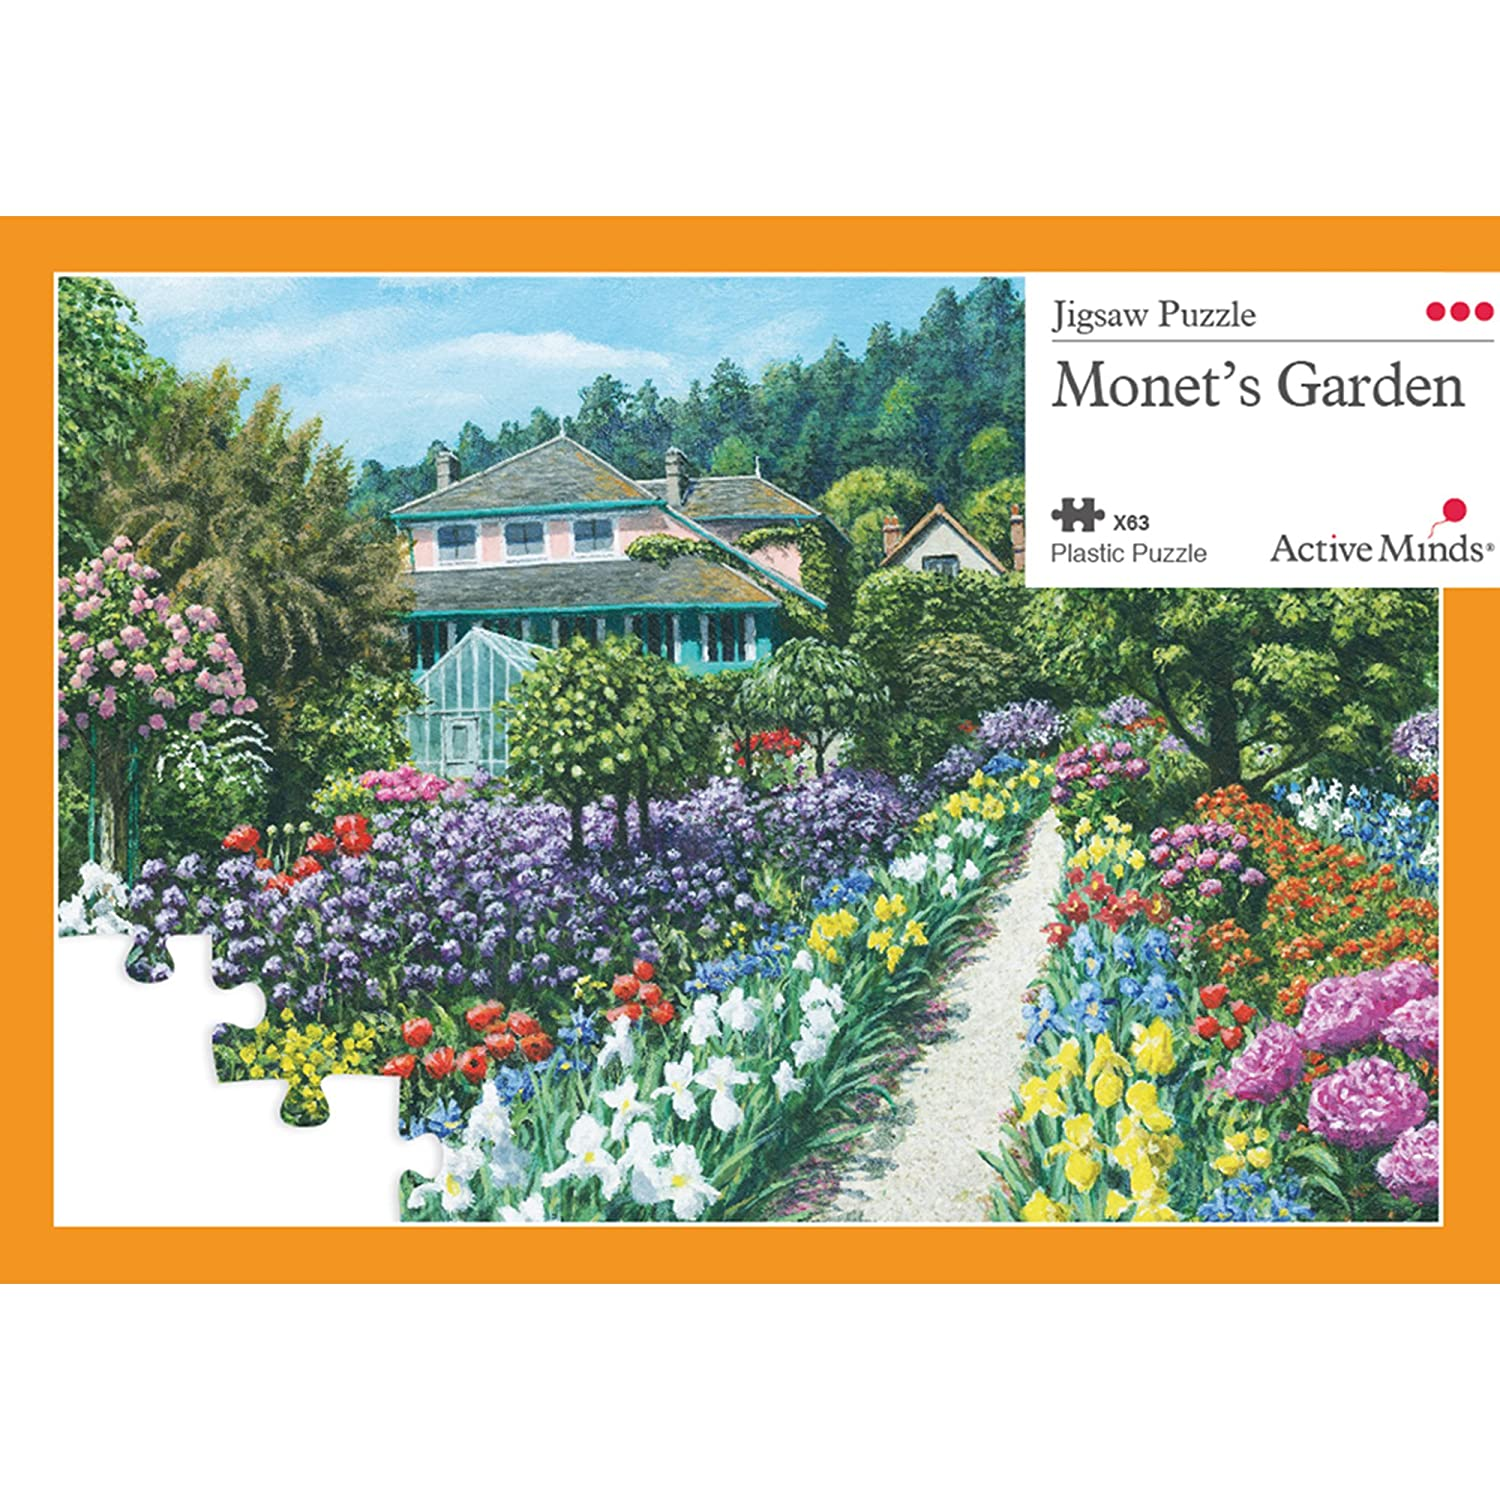 Active Minds Monet's Garden 63 Piece Jigsaw Puzzle: Specialist Alzheimer's / Dementia Activities and Games